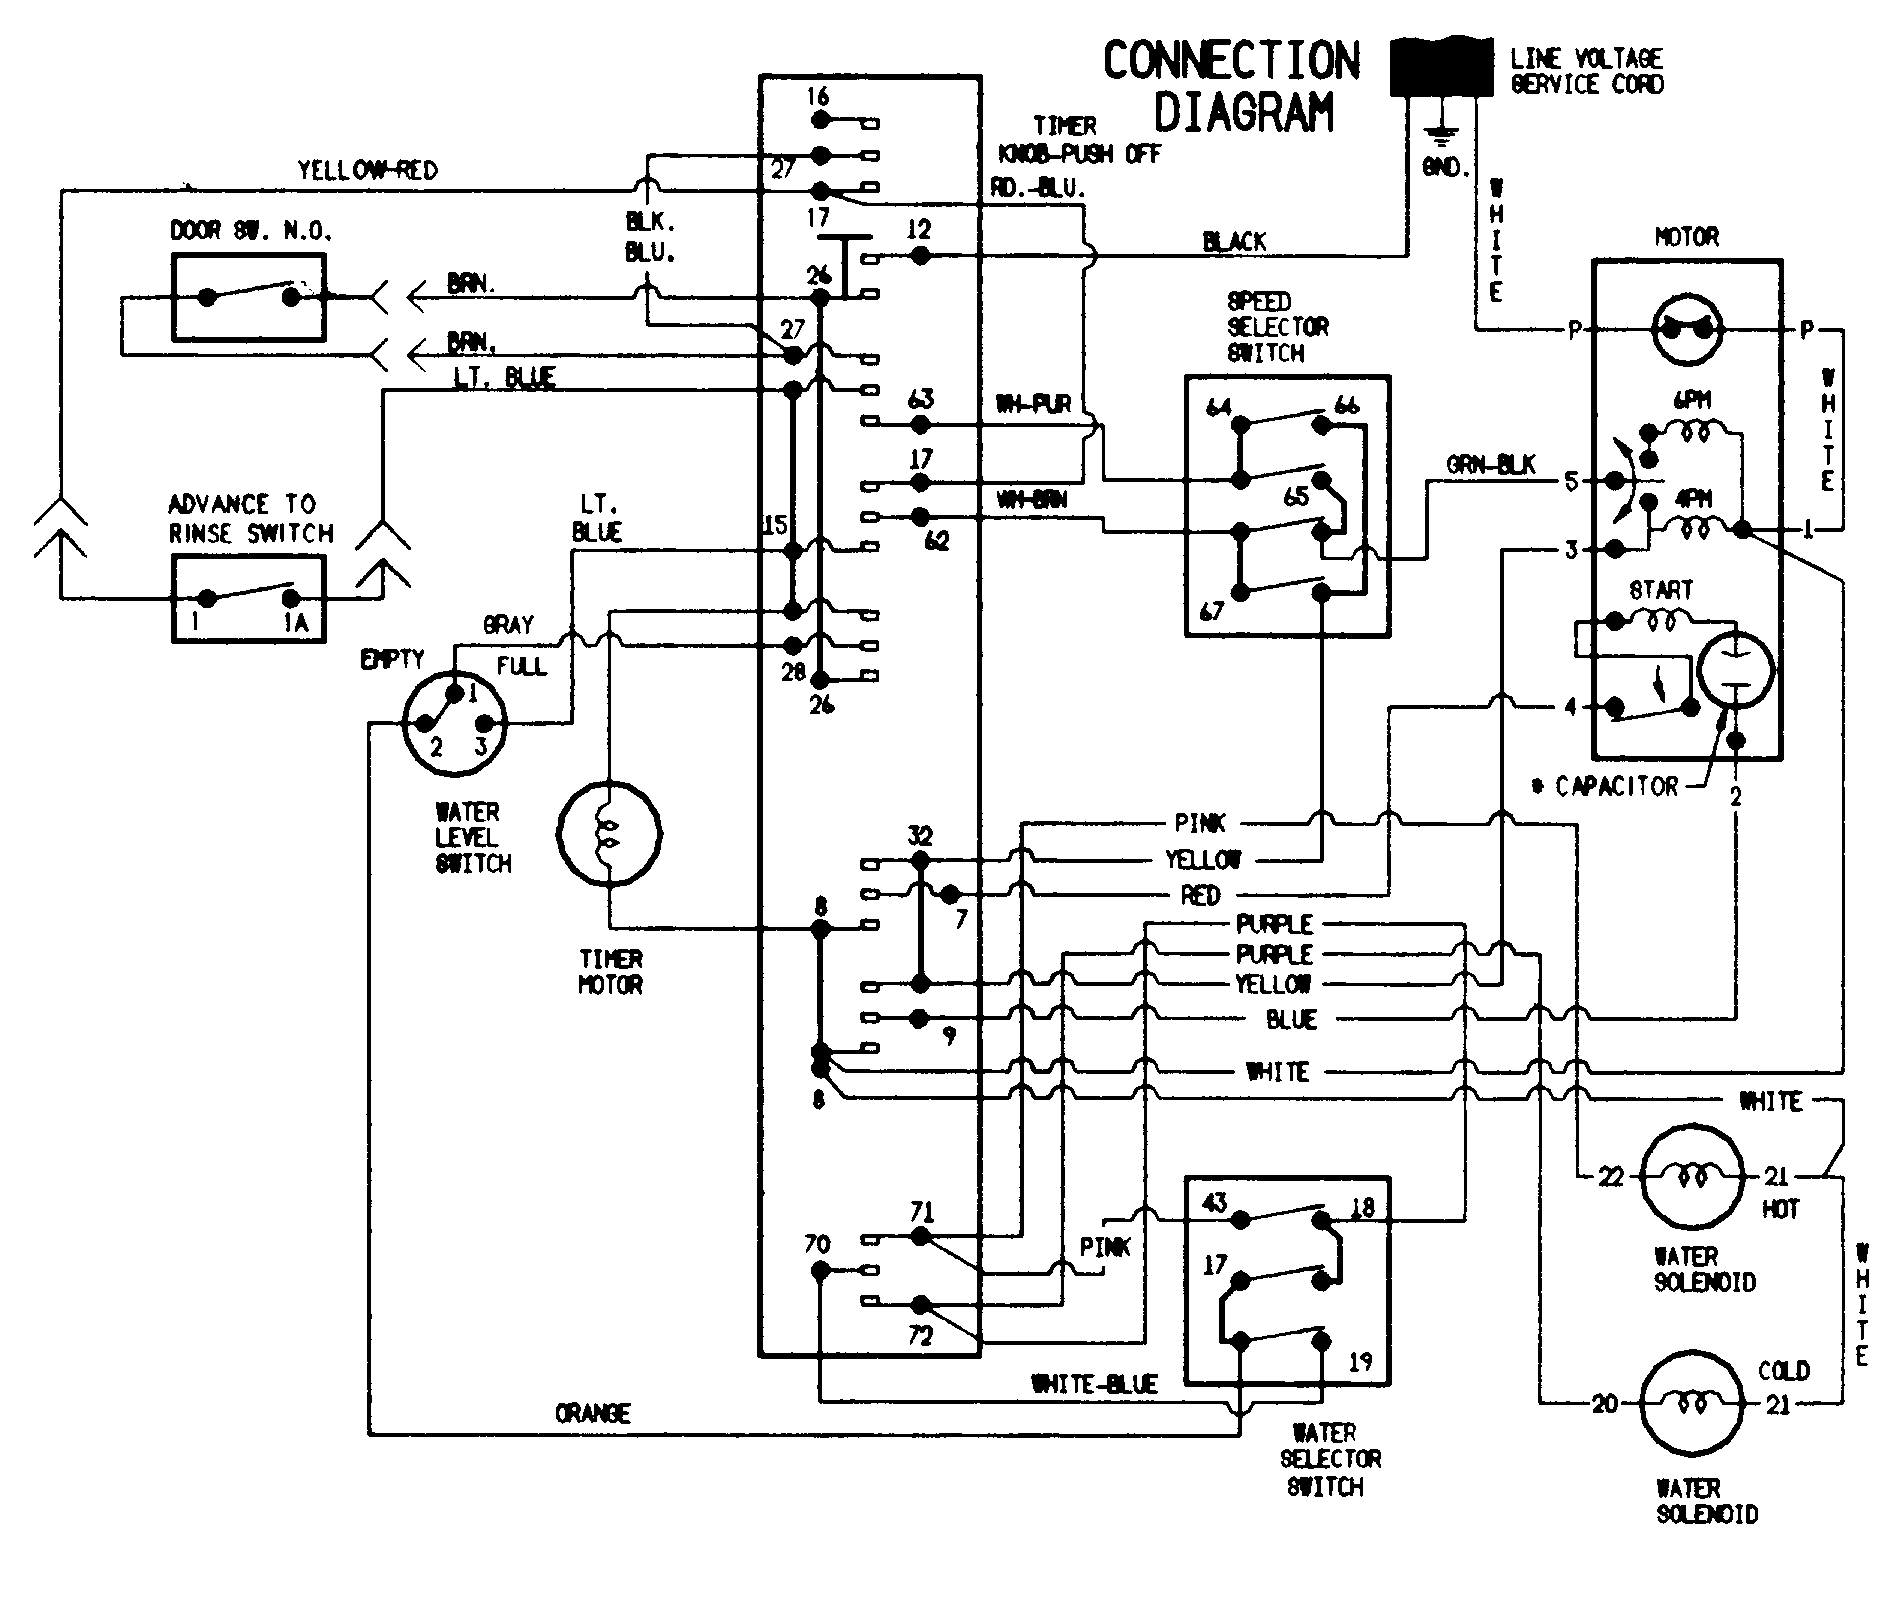 Carling Switch Wiring Diagram For Nav Will Be A Thing Rugged Ridge Rocker Vadj U2022